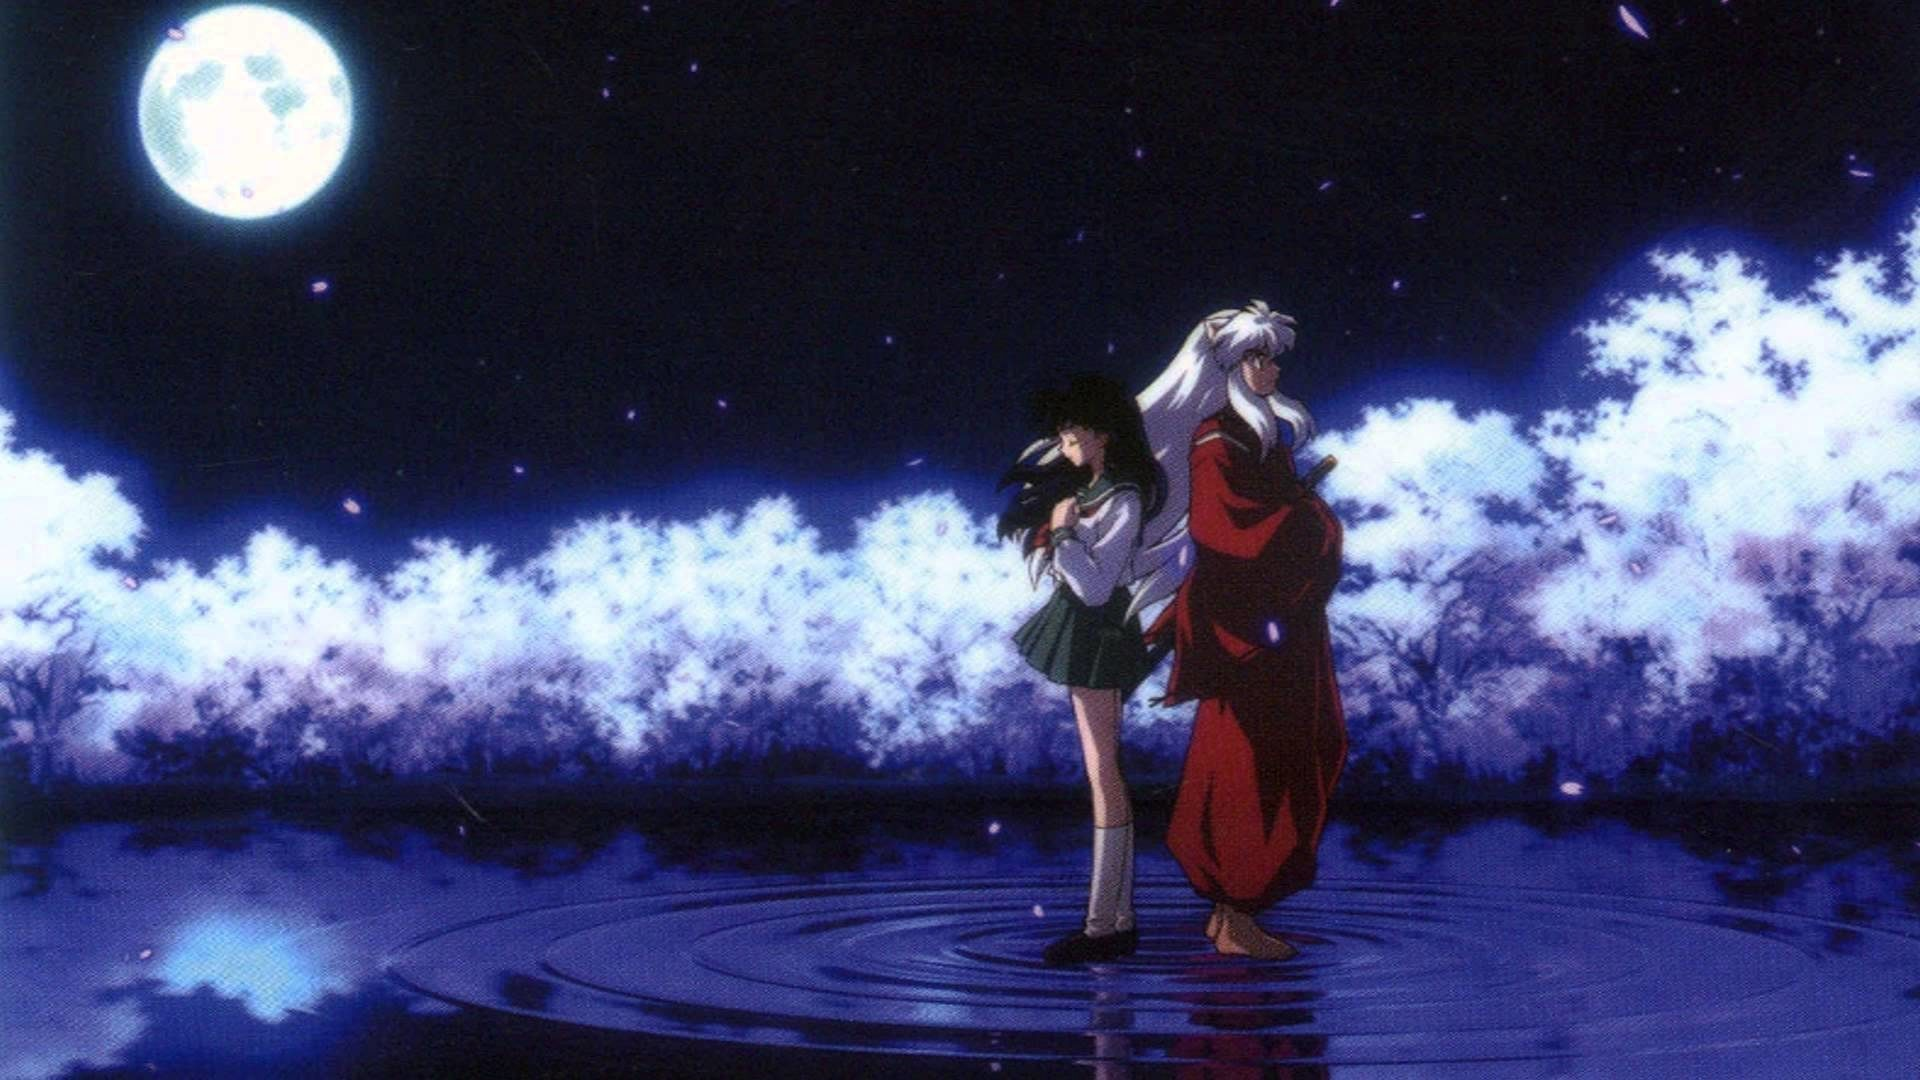 1920x1080 InuYasha Wallpaper 20 - 1920 X 1080